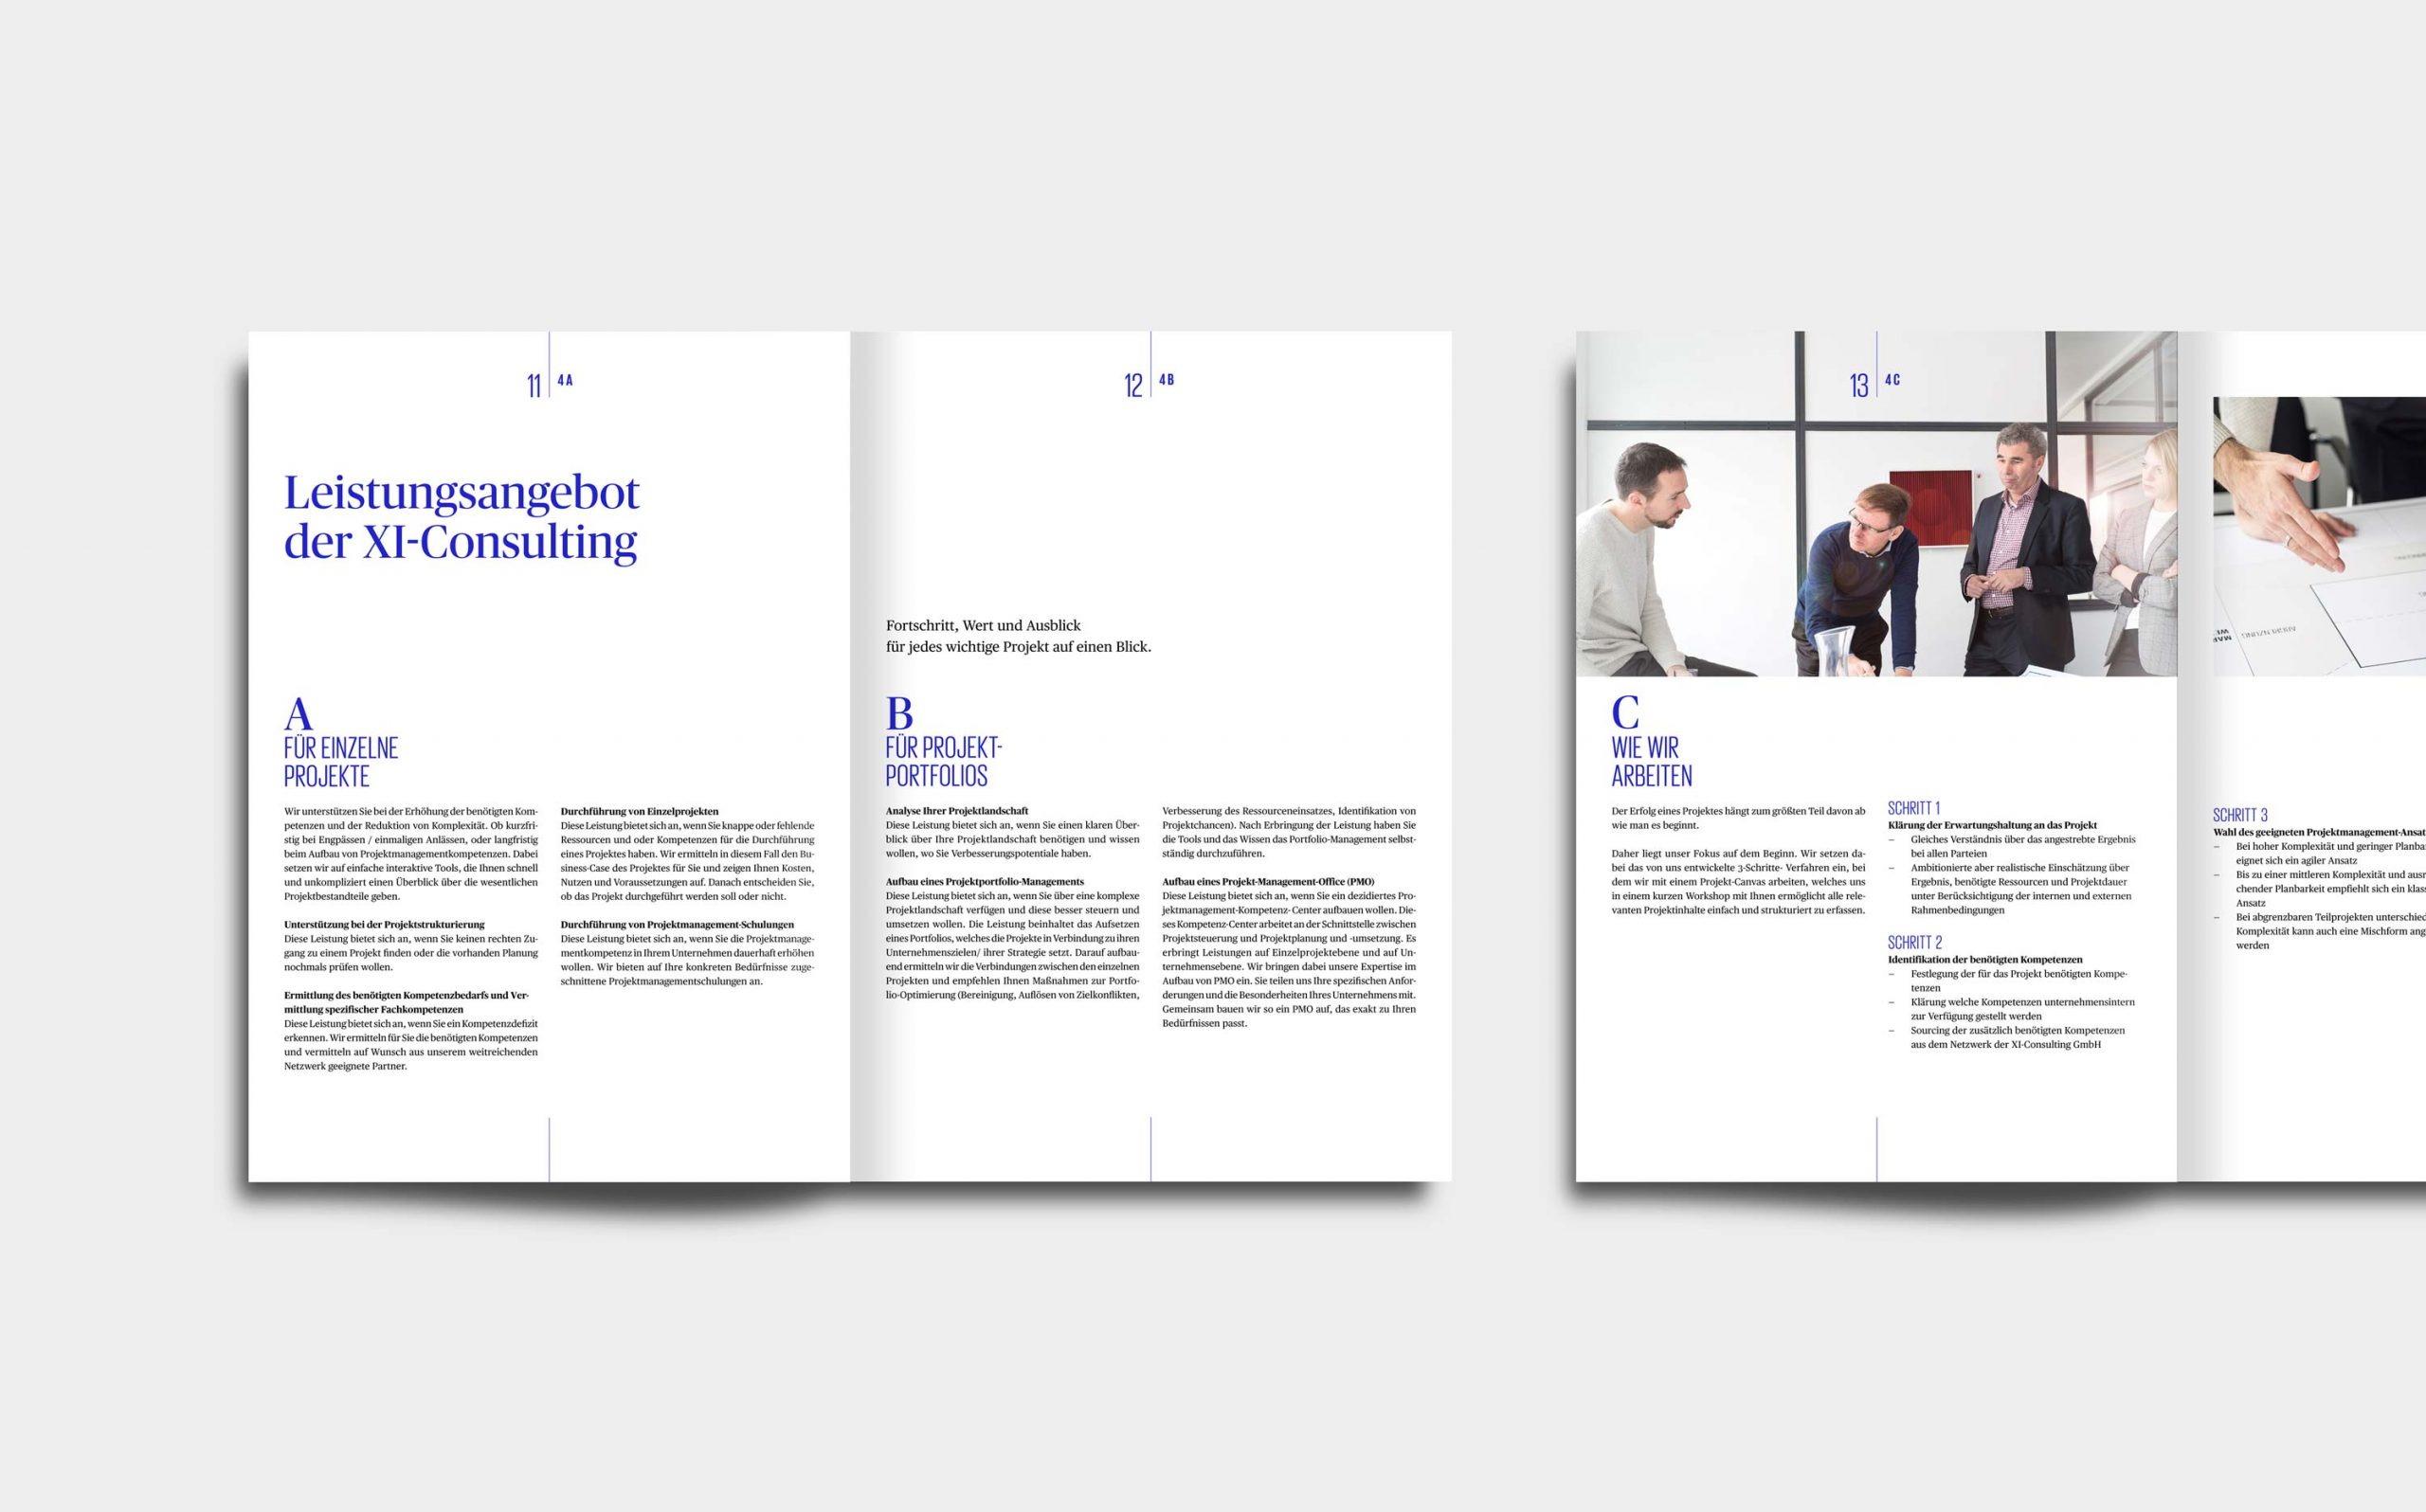 Cross Industry Consulting | Innenseiten aus dem Whitepaper mit klarem Raster und viel Weißraum, Headlines in Signalblau, Fließtext in Schwarz | Keywords: Corporate Design, Logo, Grafikdesign, Design, Typografie, Whitepaper, Strategie, Beratung